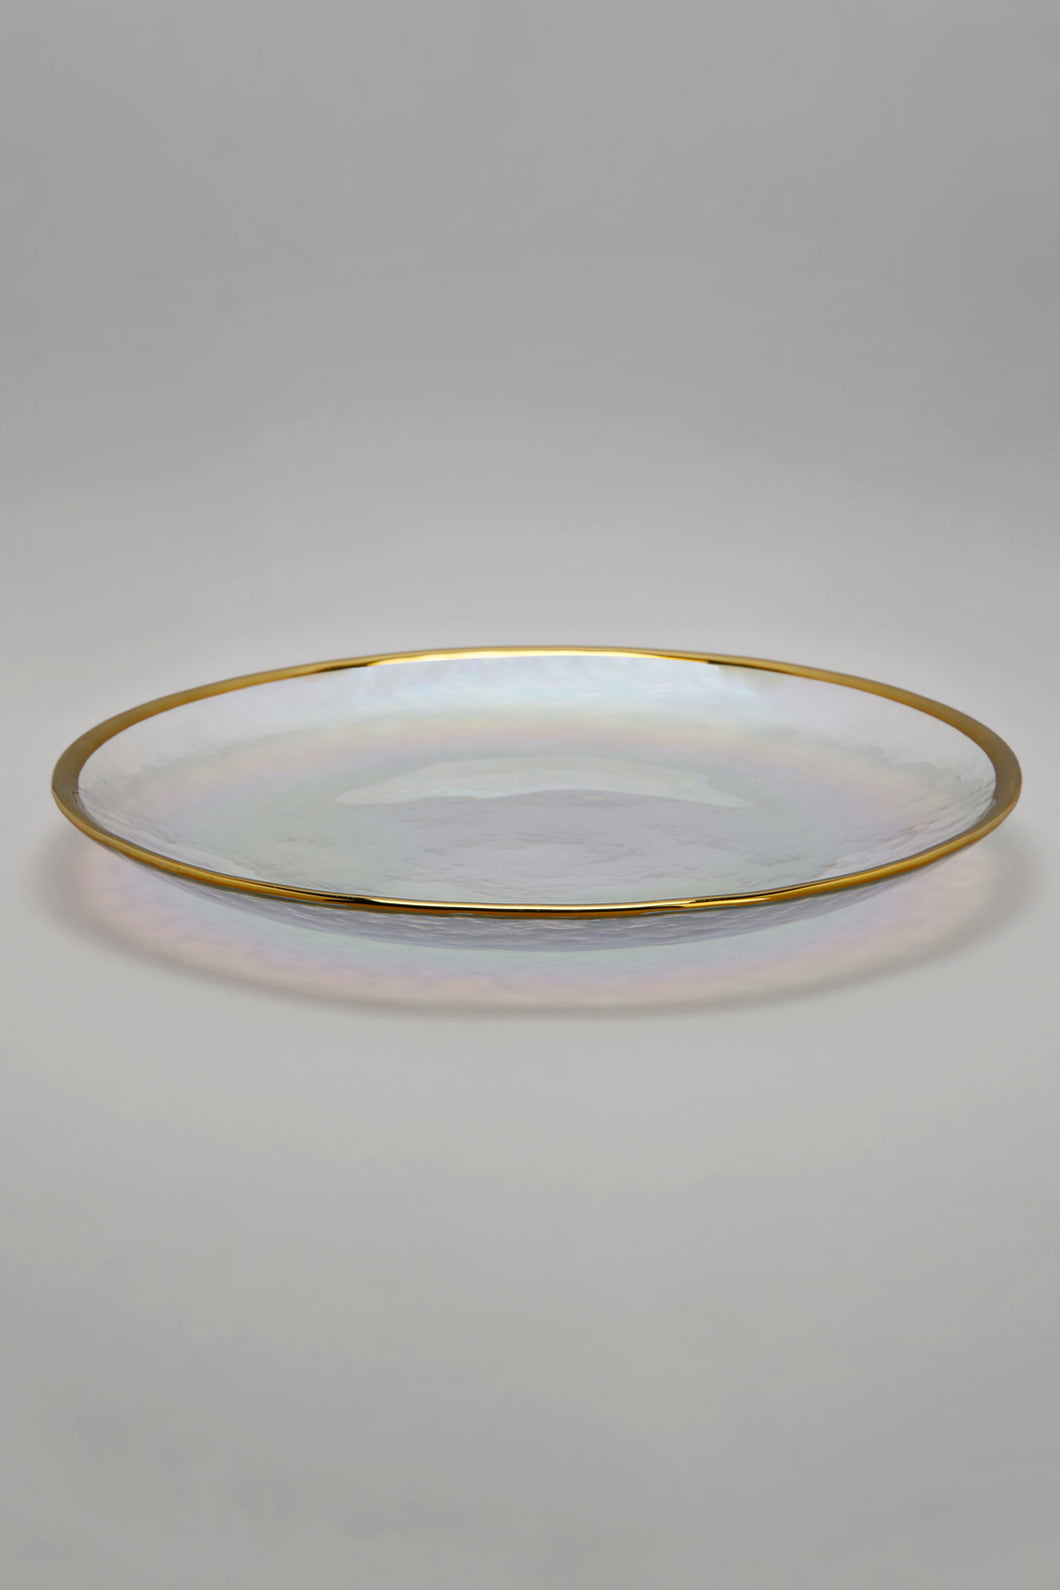 Iridescent Gold Rim Side Plate